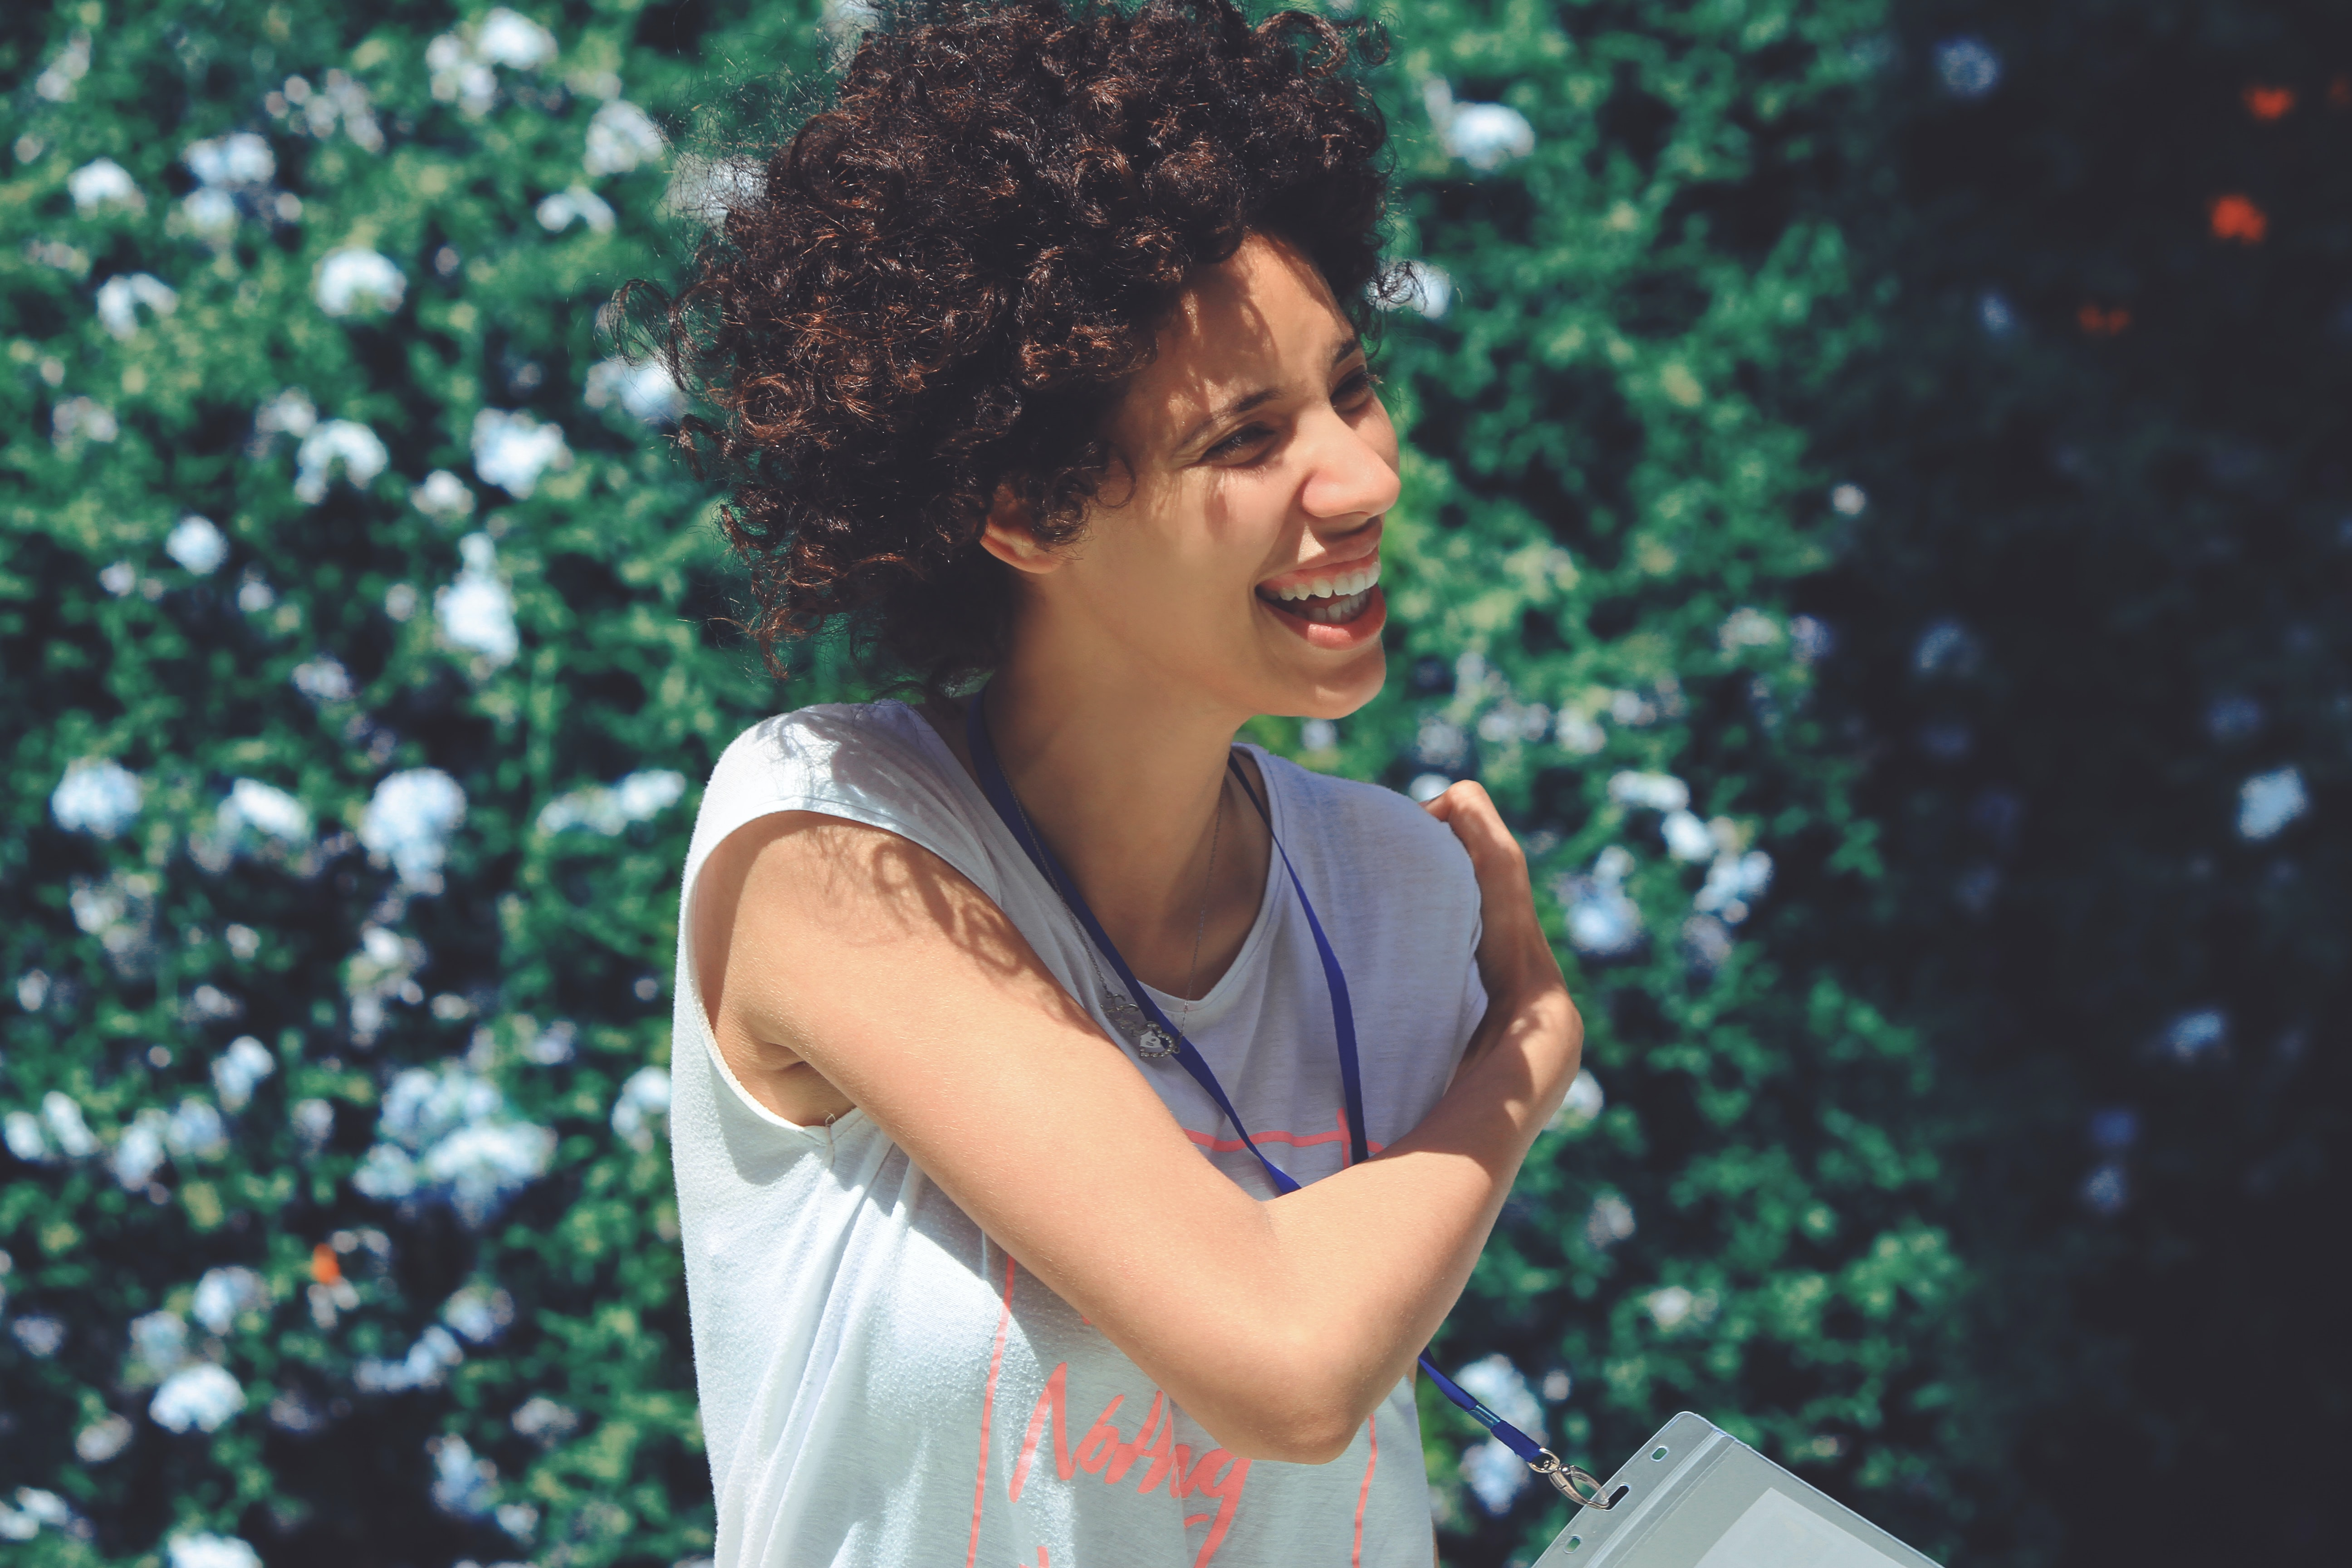 Woman with curly hair laughs while wrapping her arm around to her shoulder in front of greenery